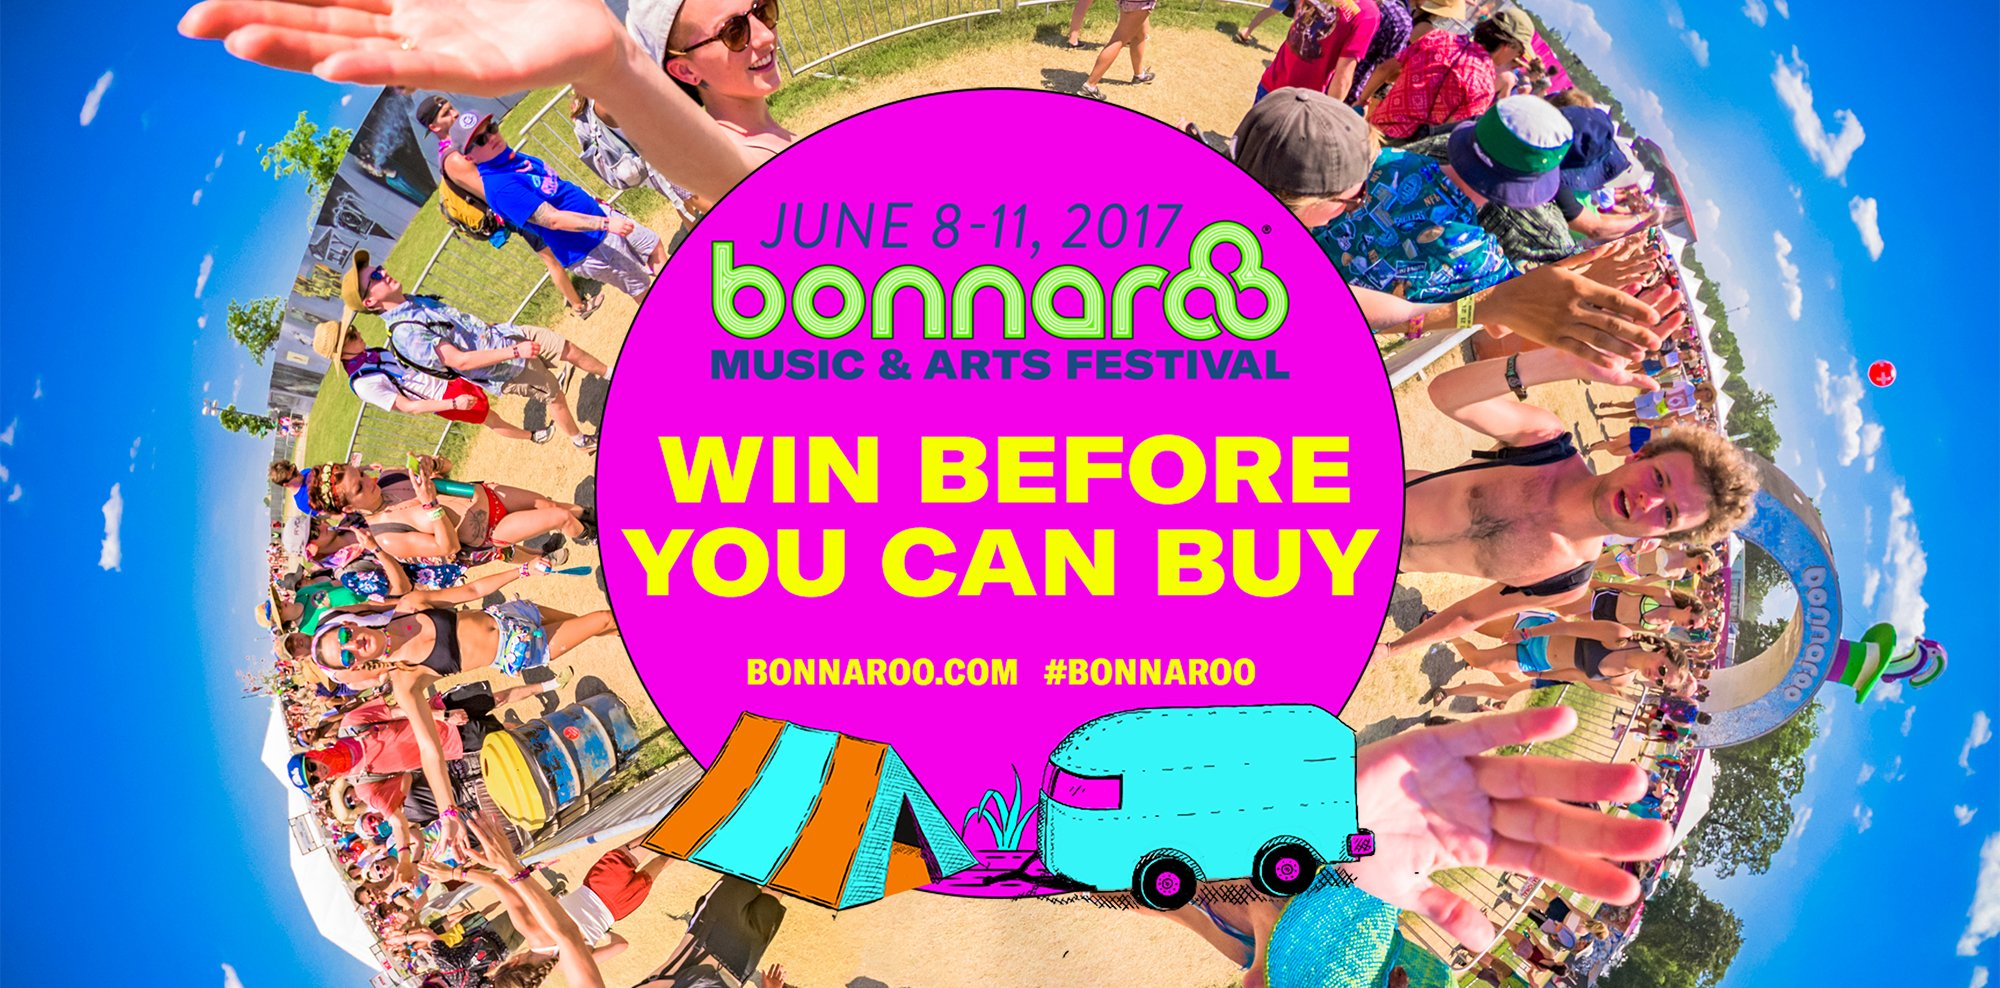 Roses are red, violets are blue  Enter here to win 2 tickets to Roo! �� https://t.co/iQhOVl27Lw #Bonnaroo https://t.co/fQLLACbsy1